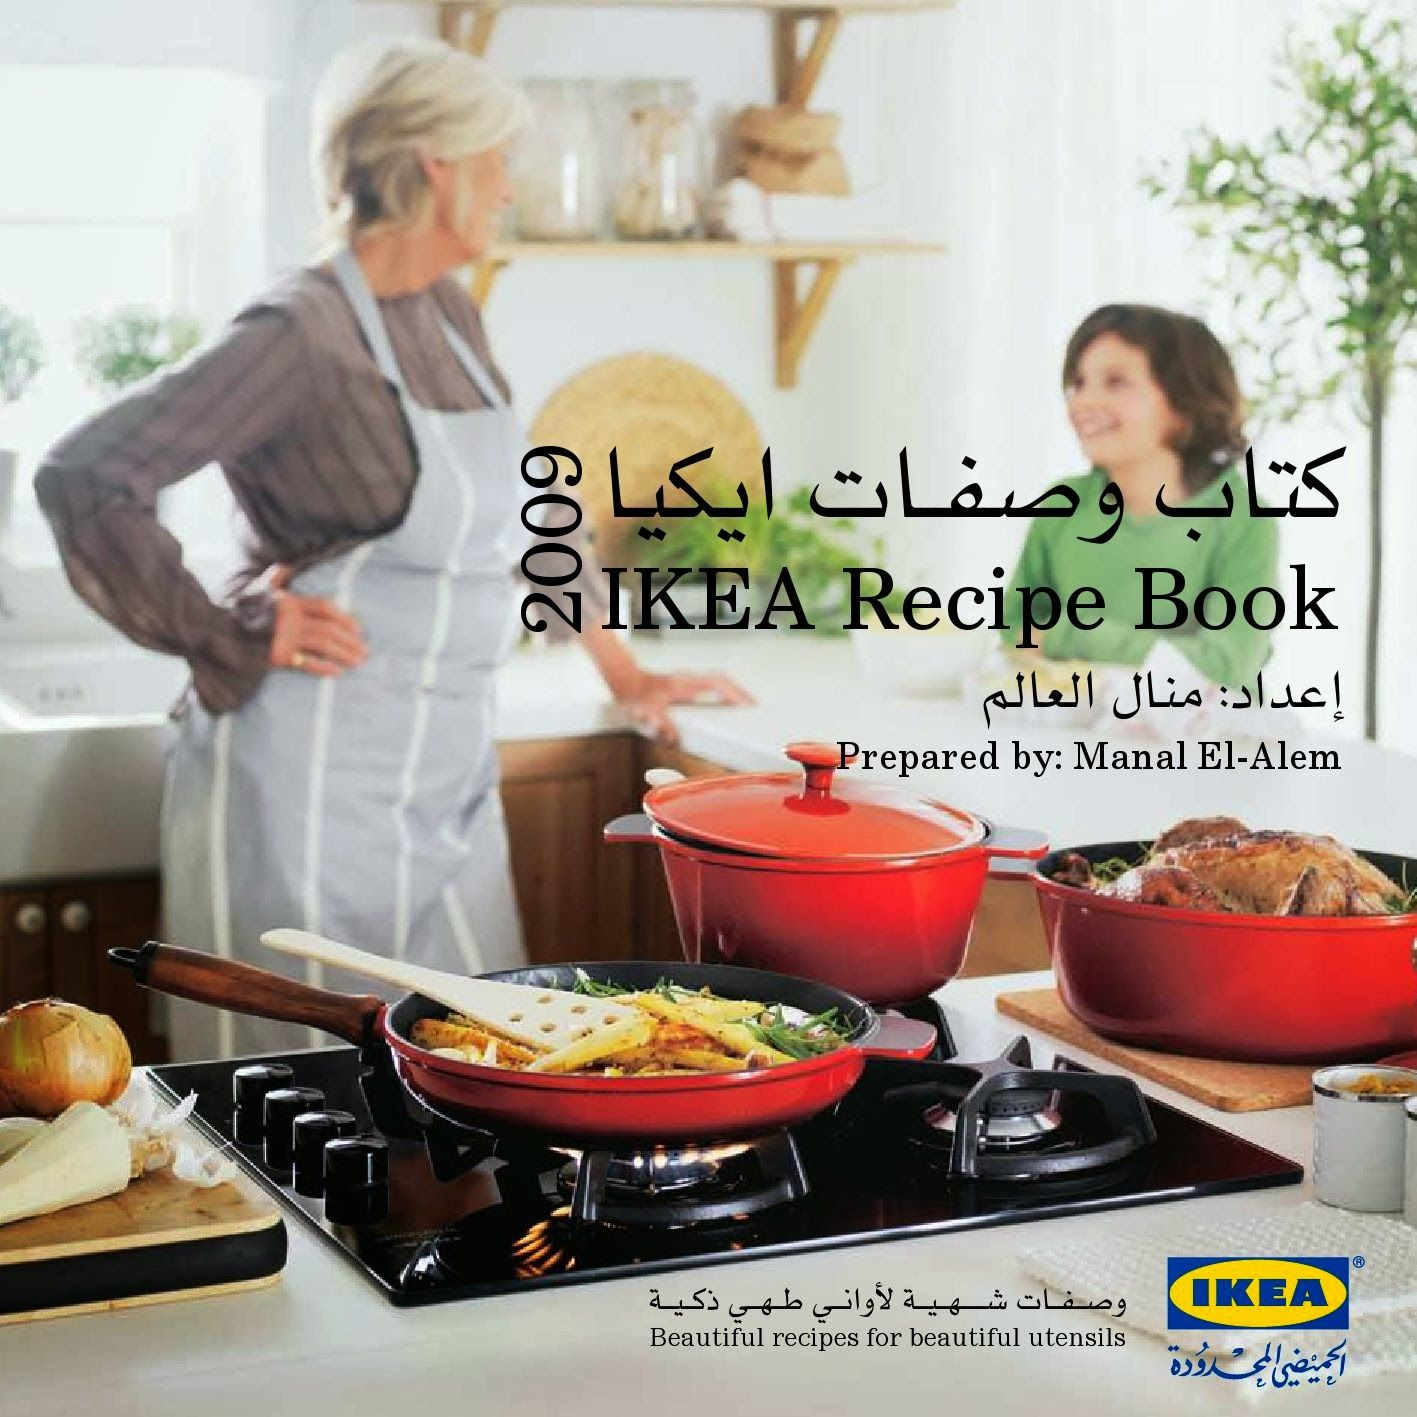 Ikea 68 pages by pdf englisharabic 15 mb http ikea 68 pages by pdf englisharabic 15 forumfinder Image collections